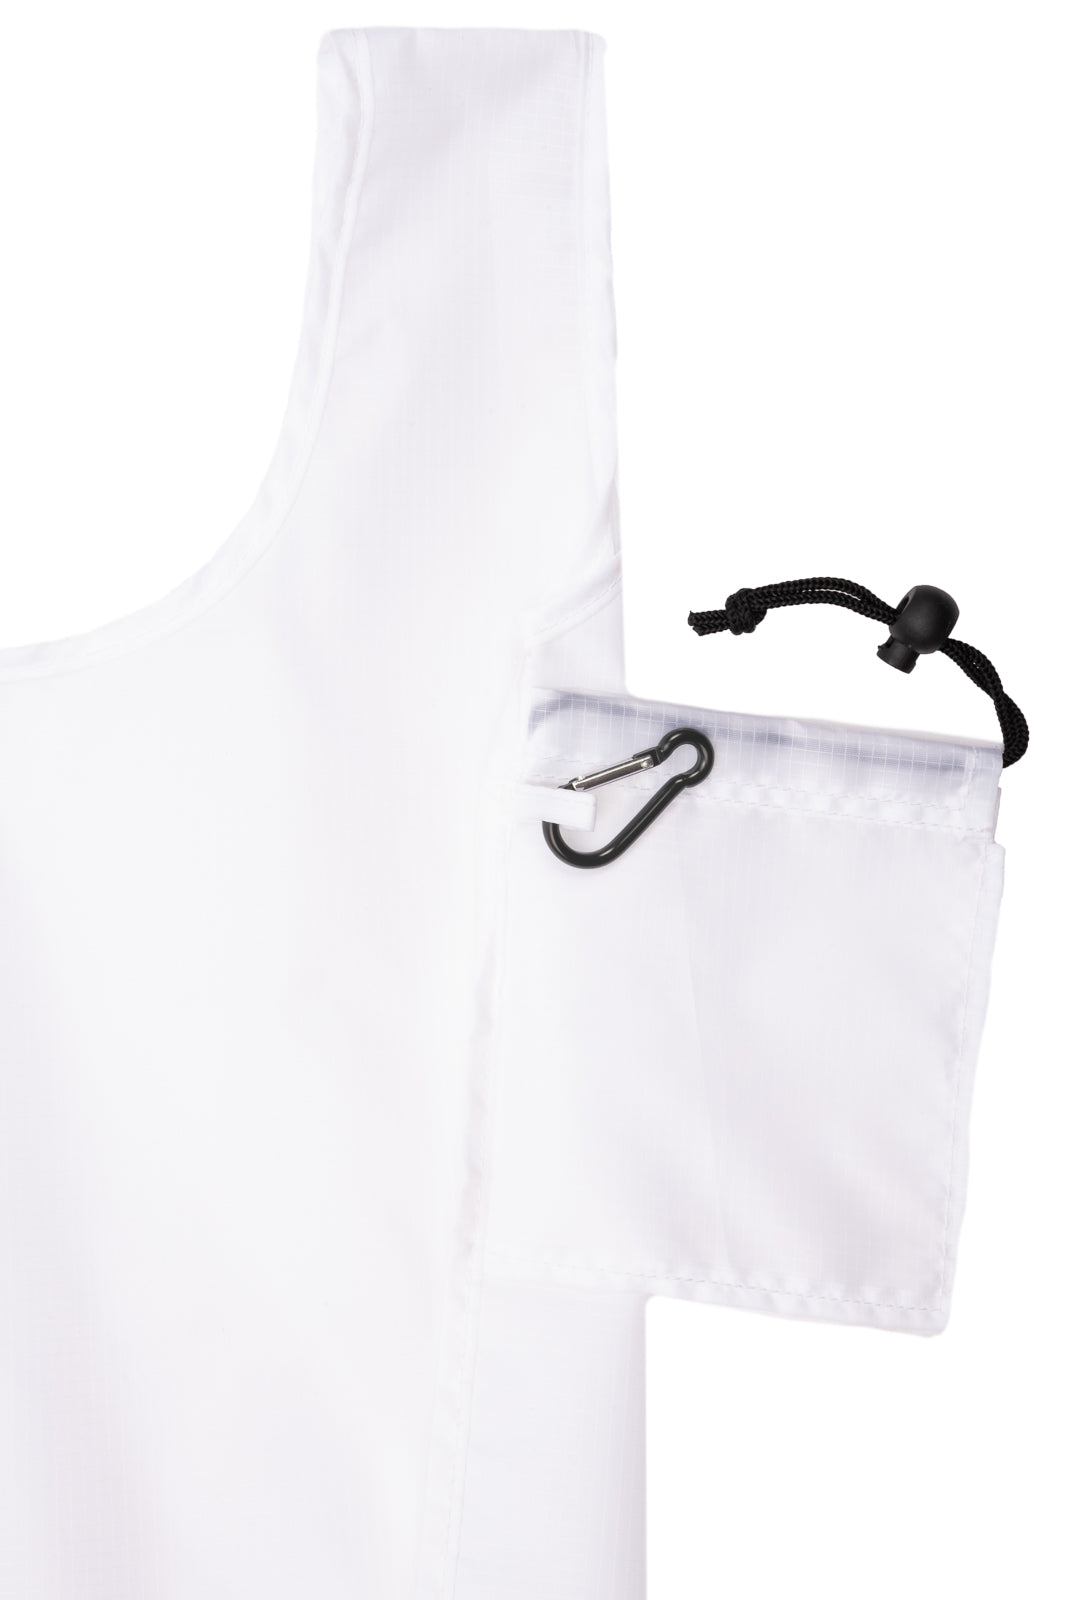 Foldable Shopping Bag With Integrated String Pouch - Bulk